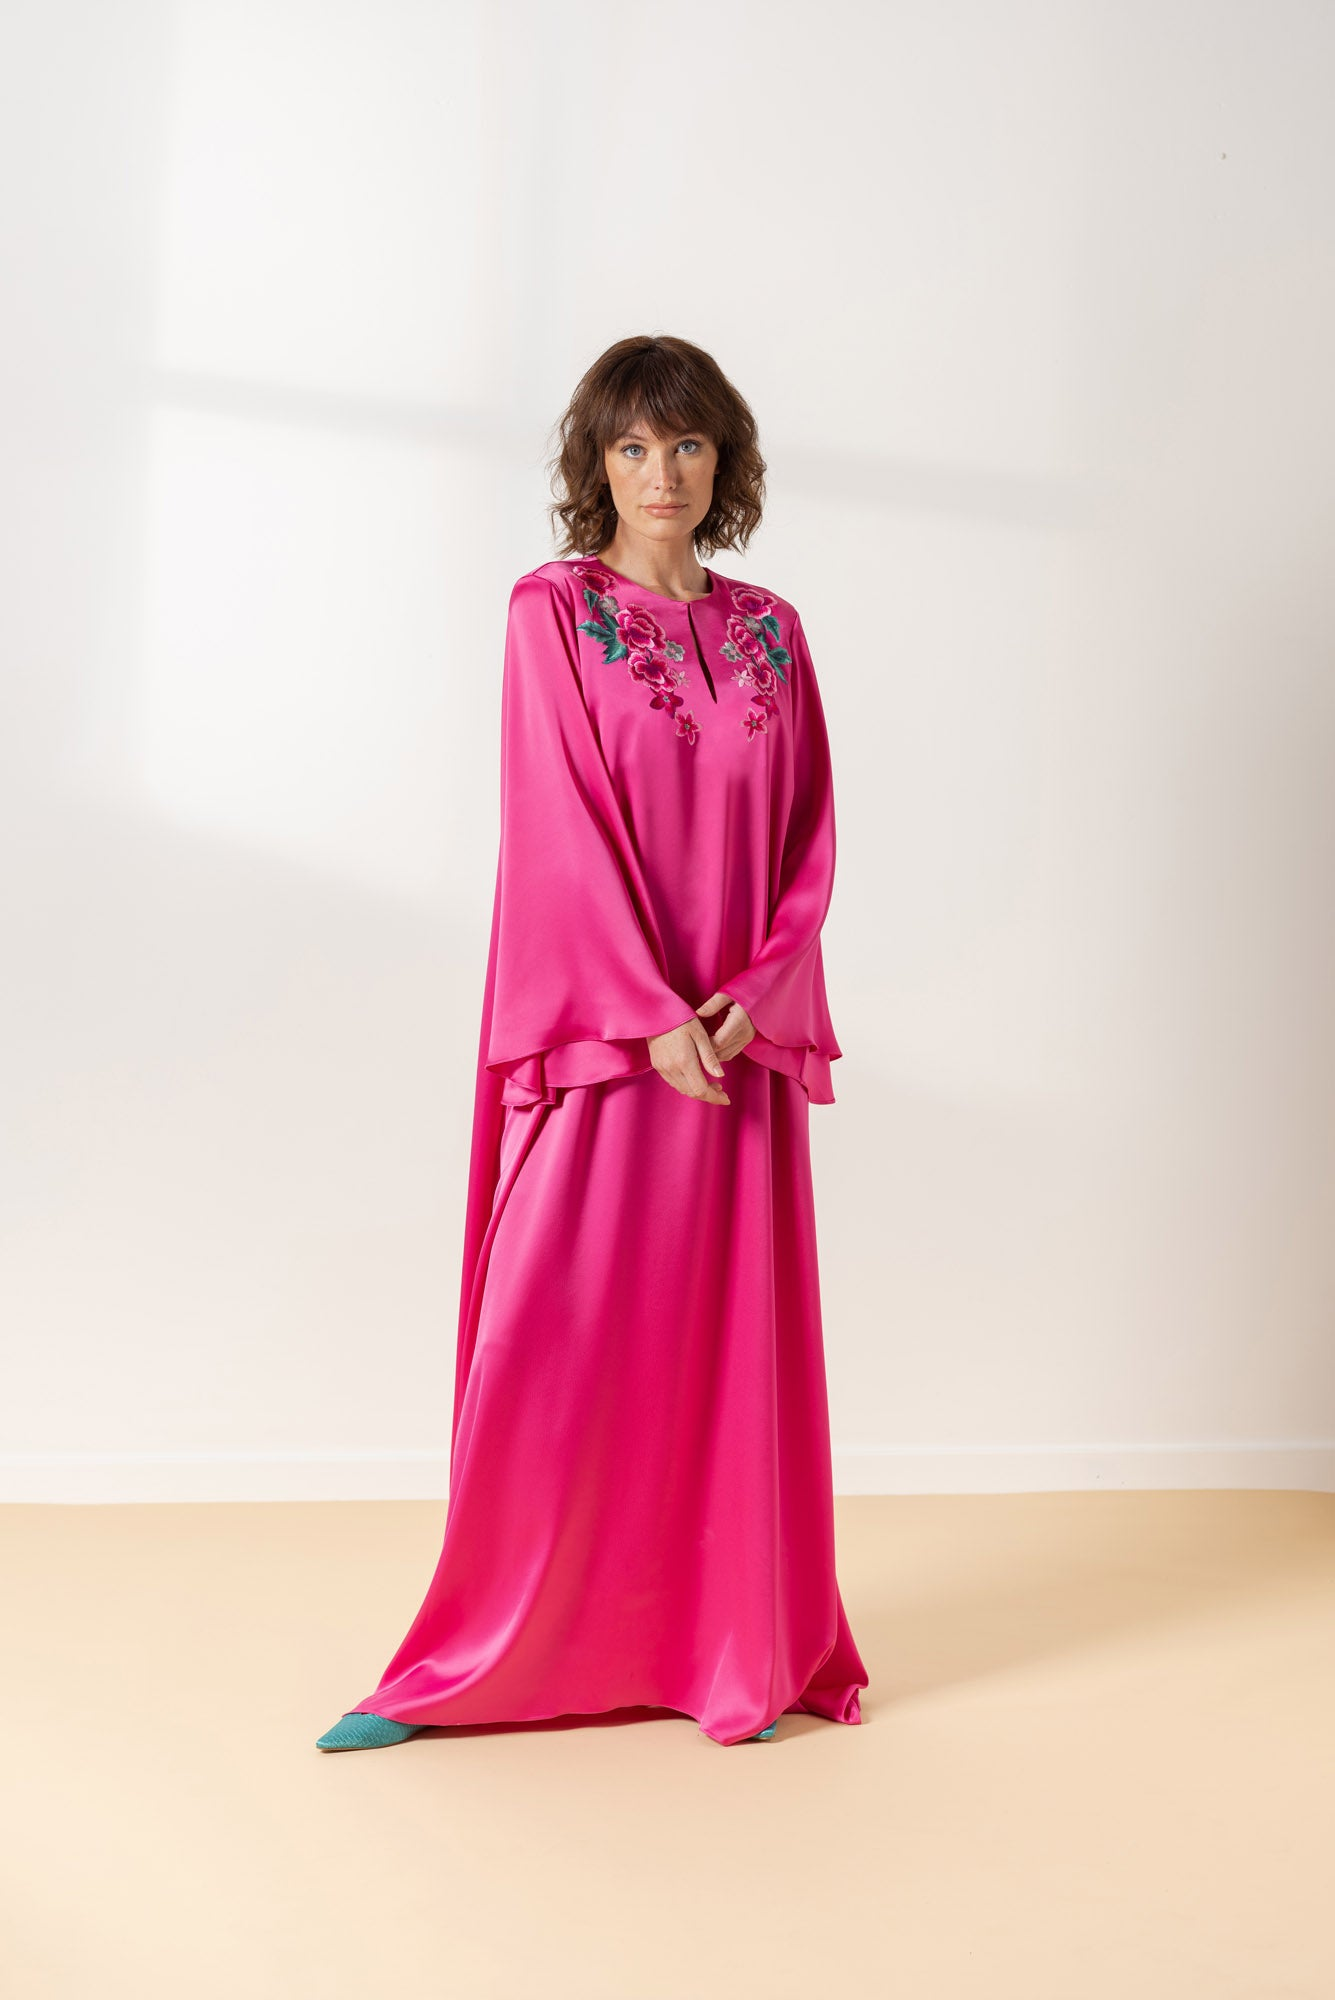 Fuchsia Evening Dress with Embroidery Design